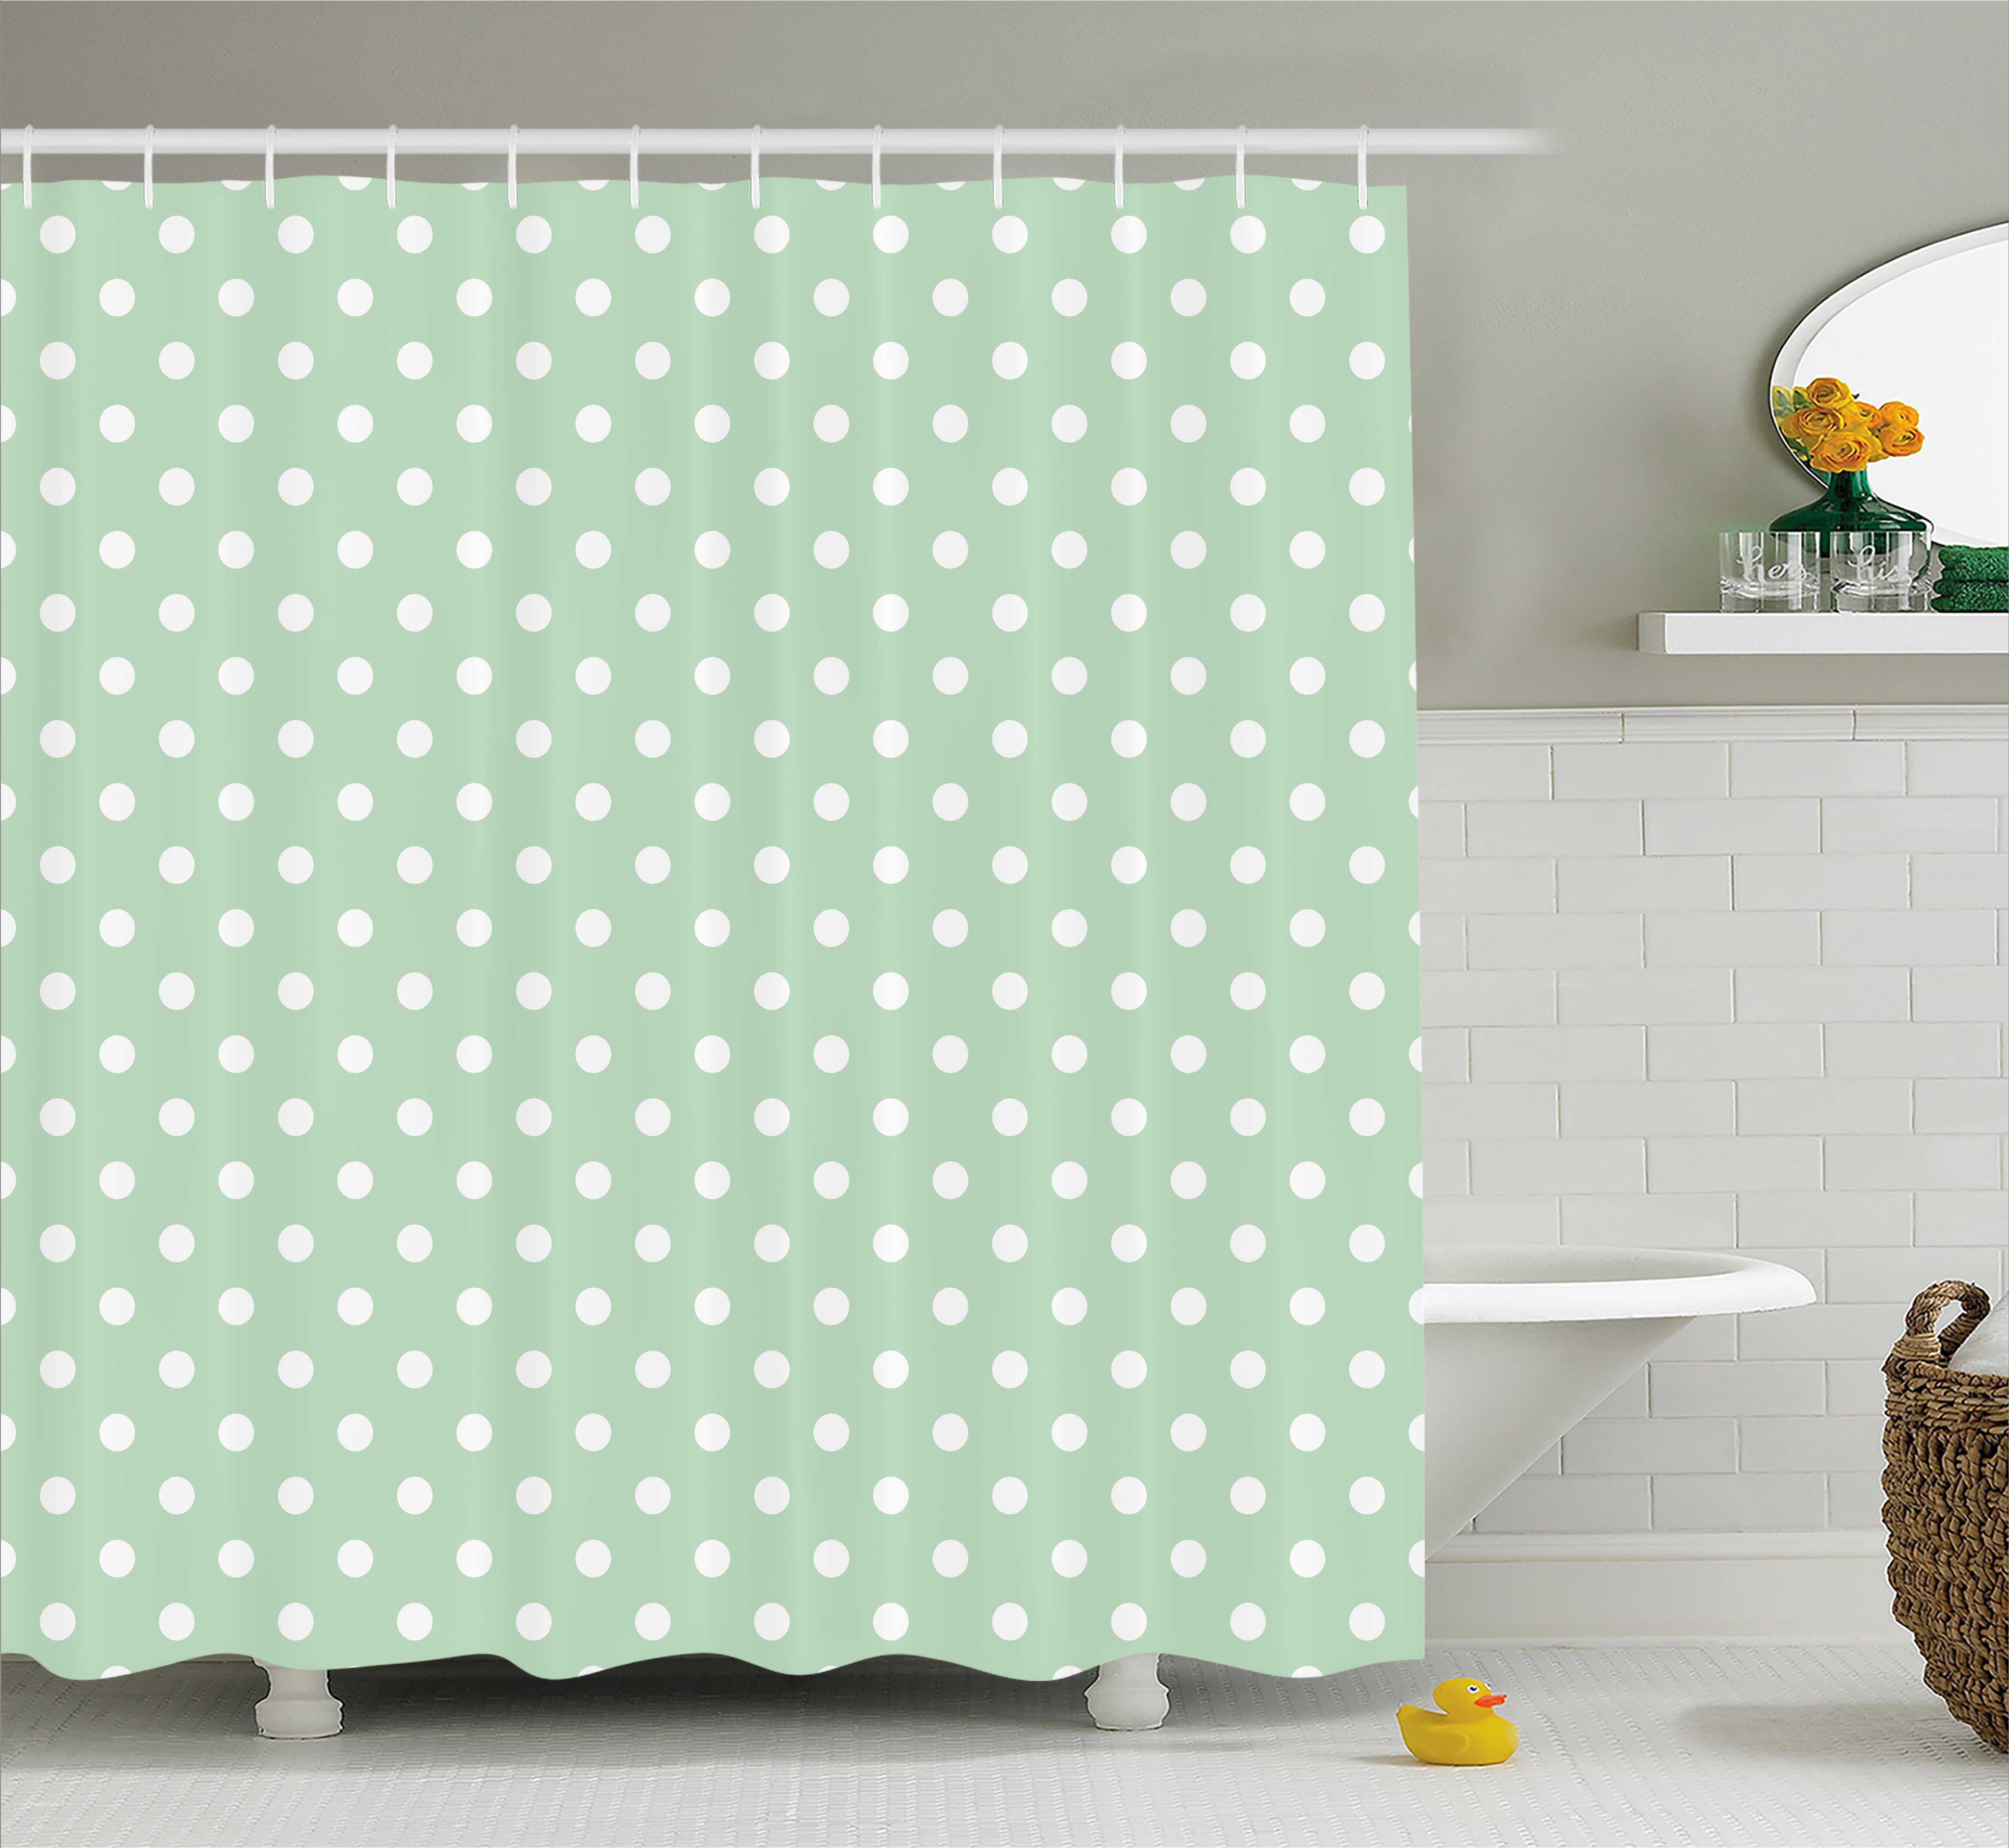 Mint Shower Curtain Classical Old Fashioned Polka Dots Pattern On Pale Green Fresh Background Fabric Bathroom Set With Hooks And White